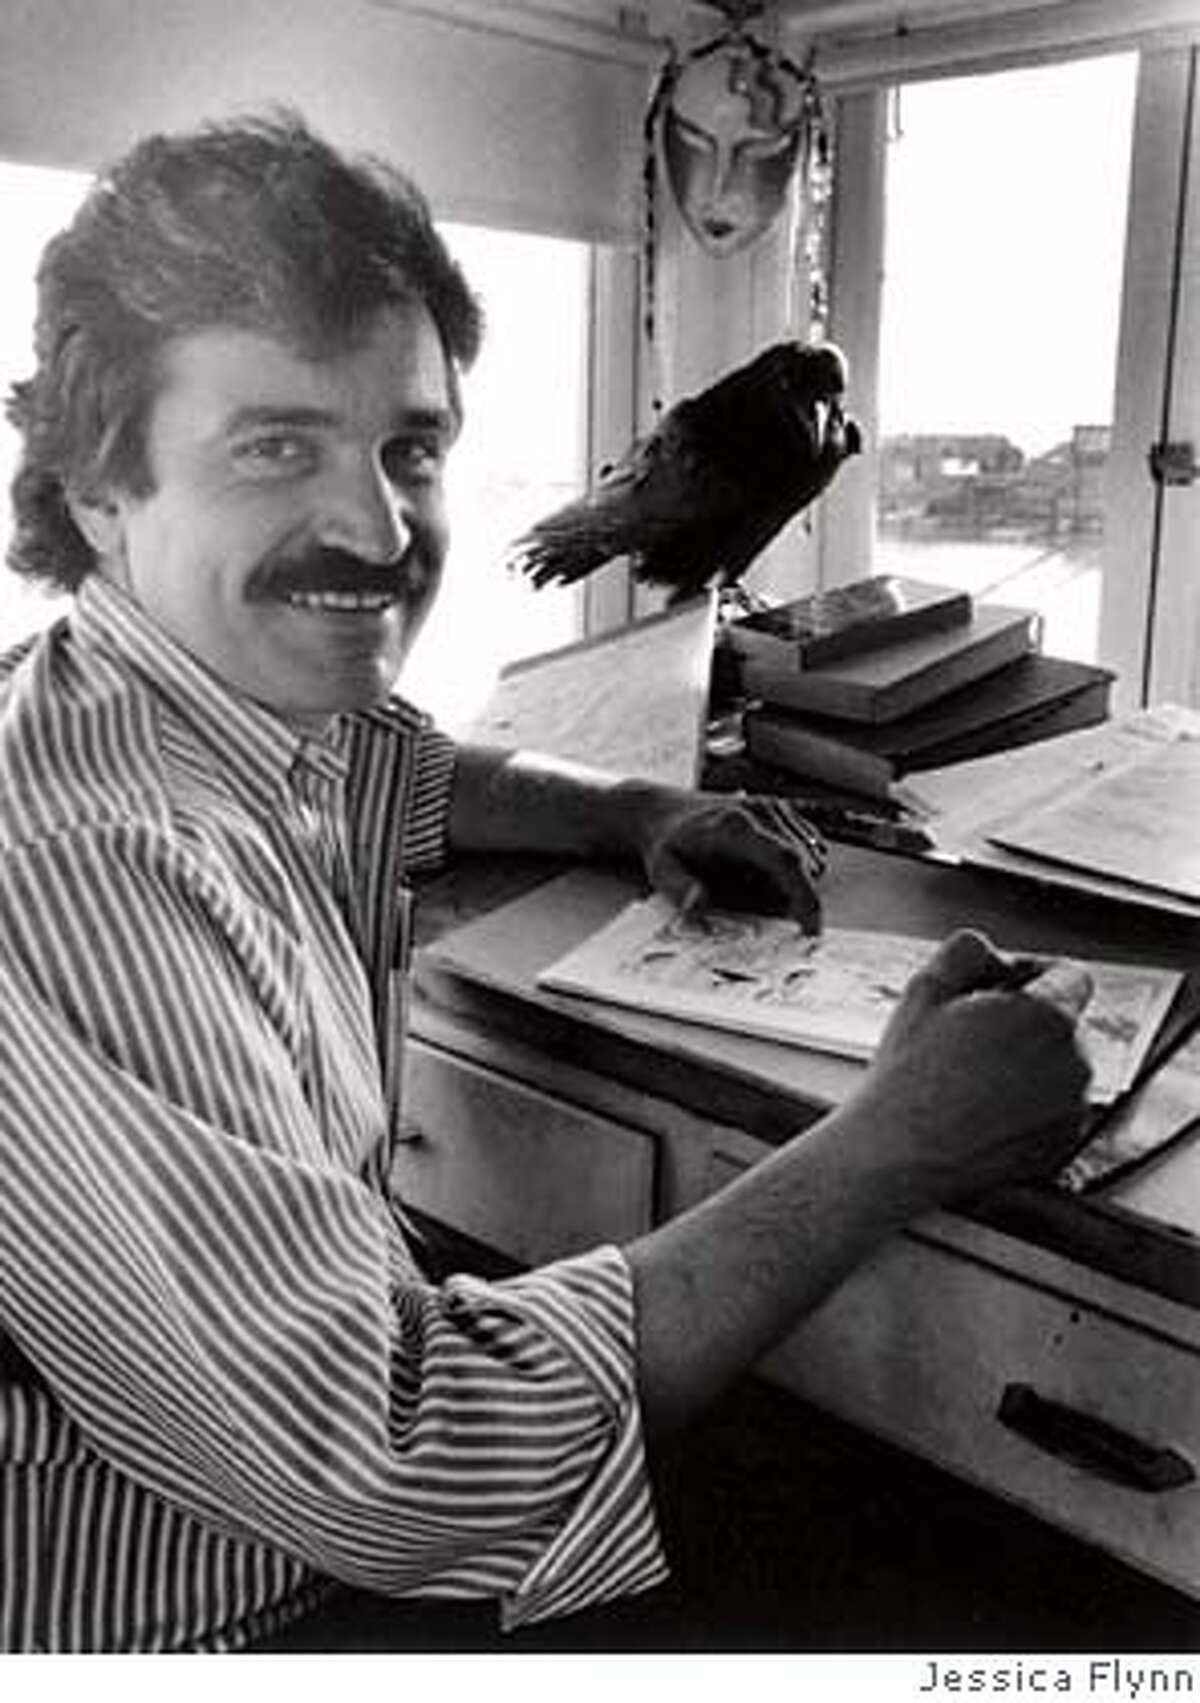 """Phil Frank, San Francisco Chronicle cartoonist, works on his comic strip """"Farley"""" in his studio aboard an 1888 ferry boat in Sausalito, CA. Bruce the raven looks on."""